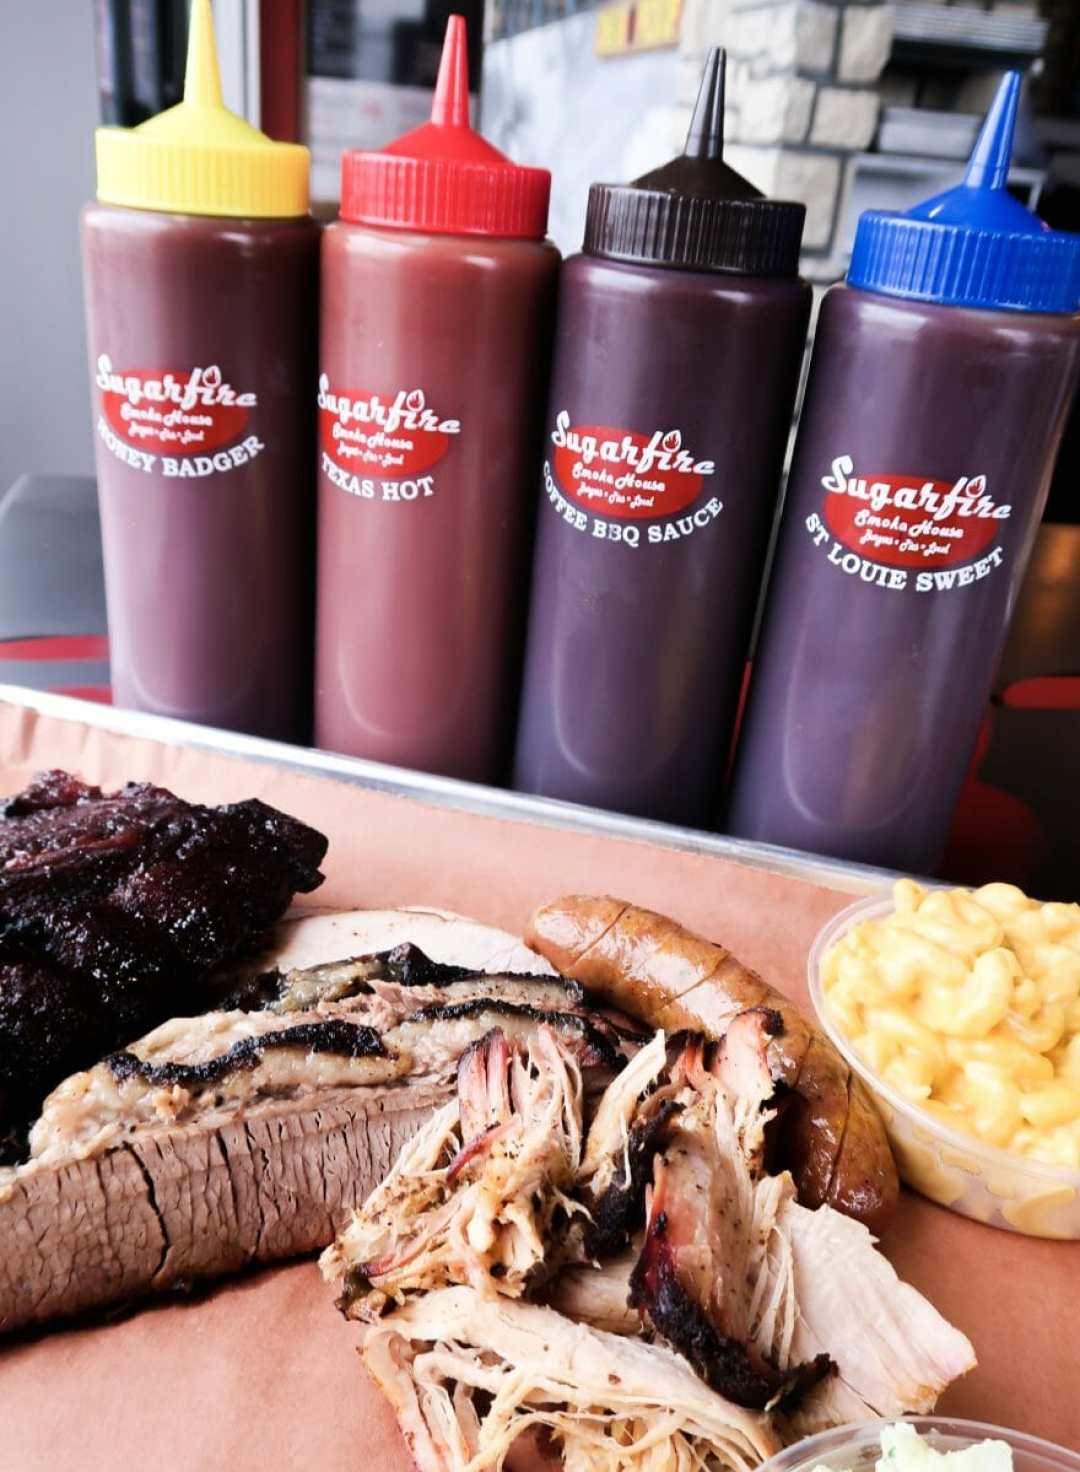 BBQ and Sides at Sugarfire Smokehouse in Union, KY